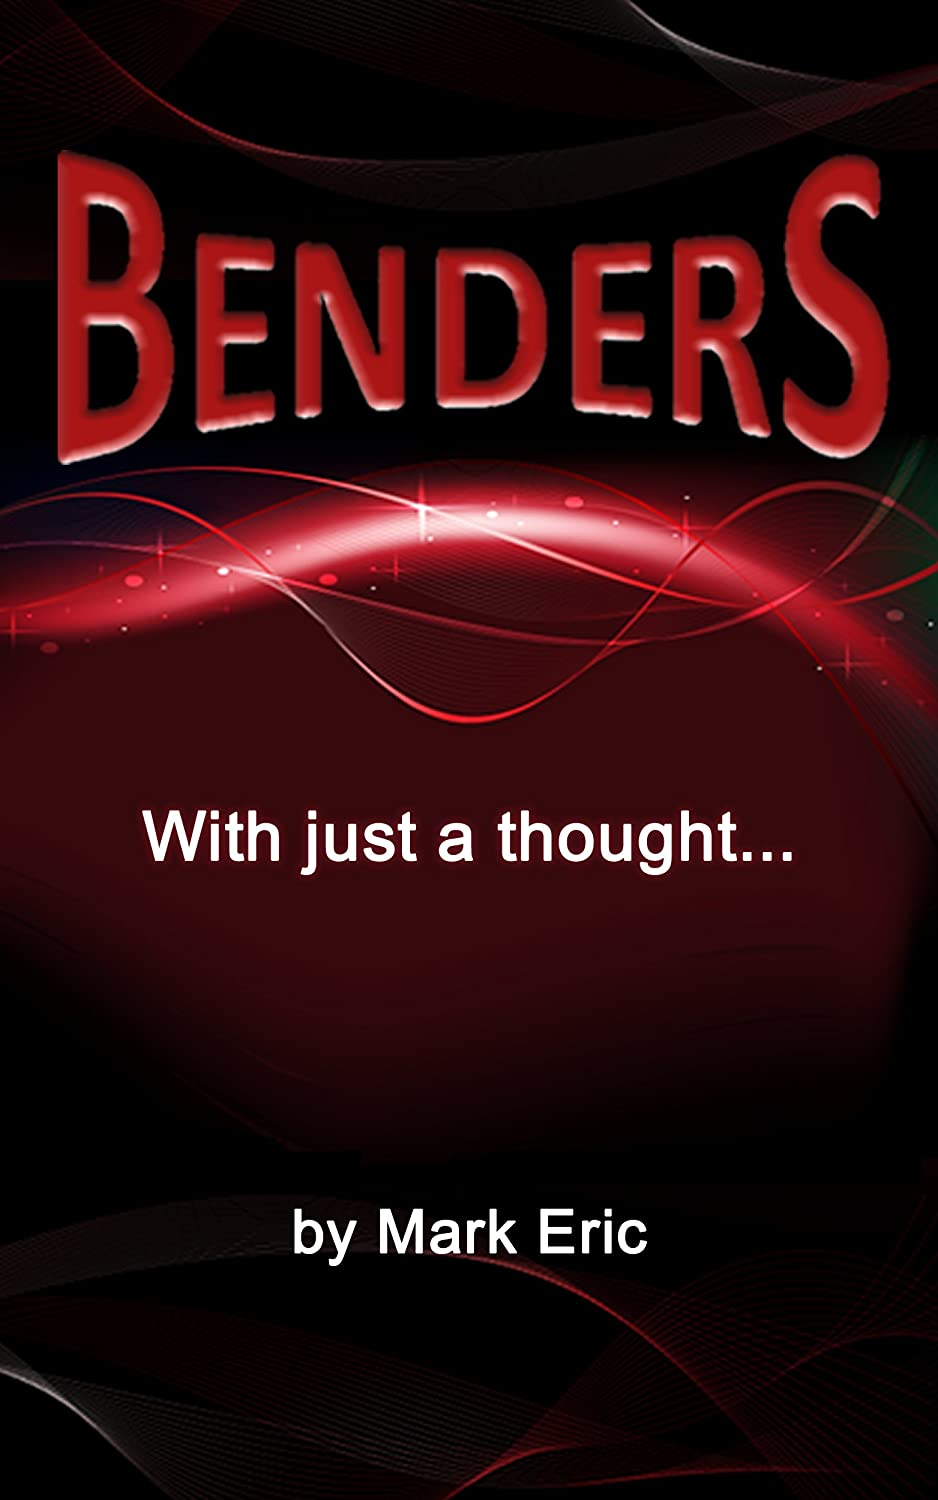 Benders by Marc Eric